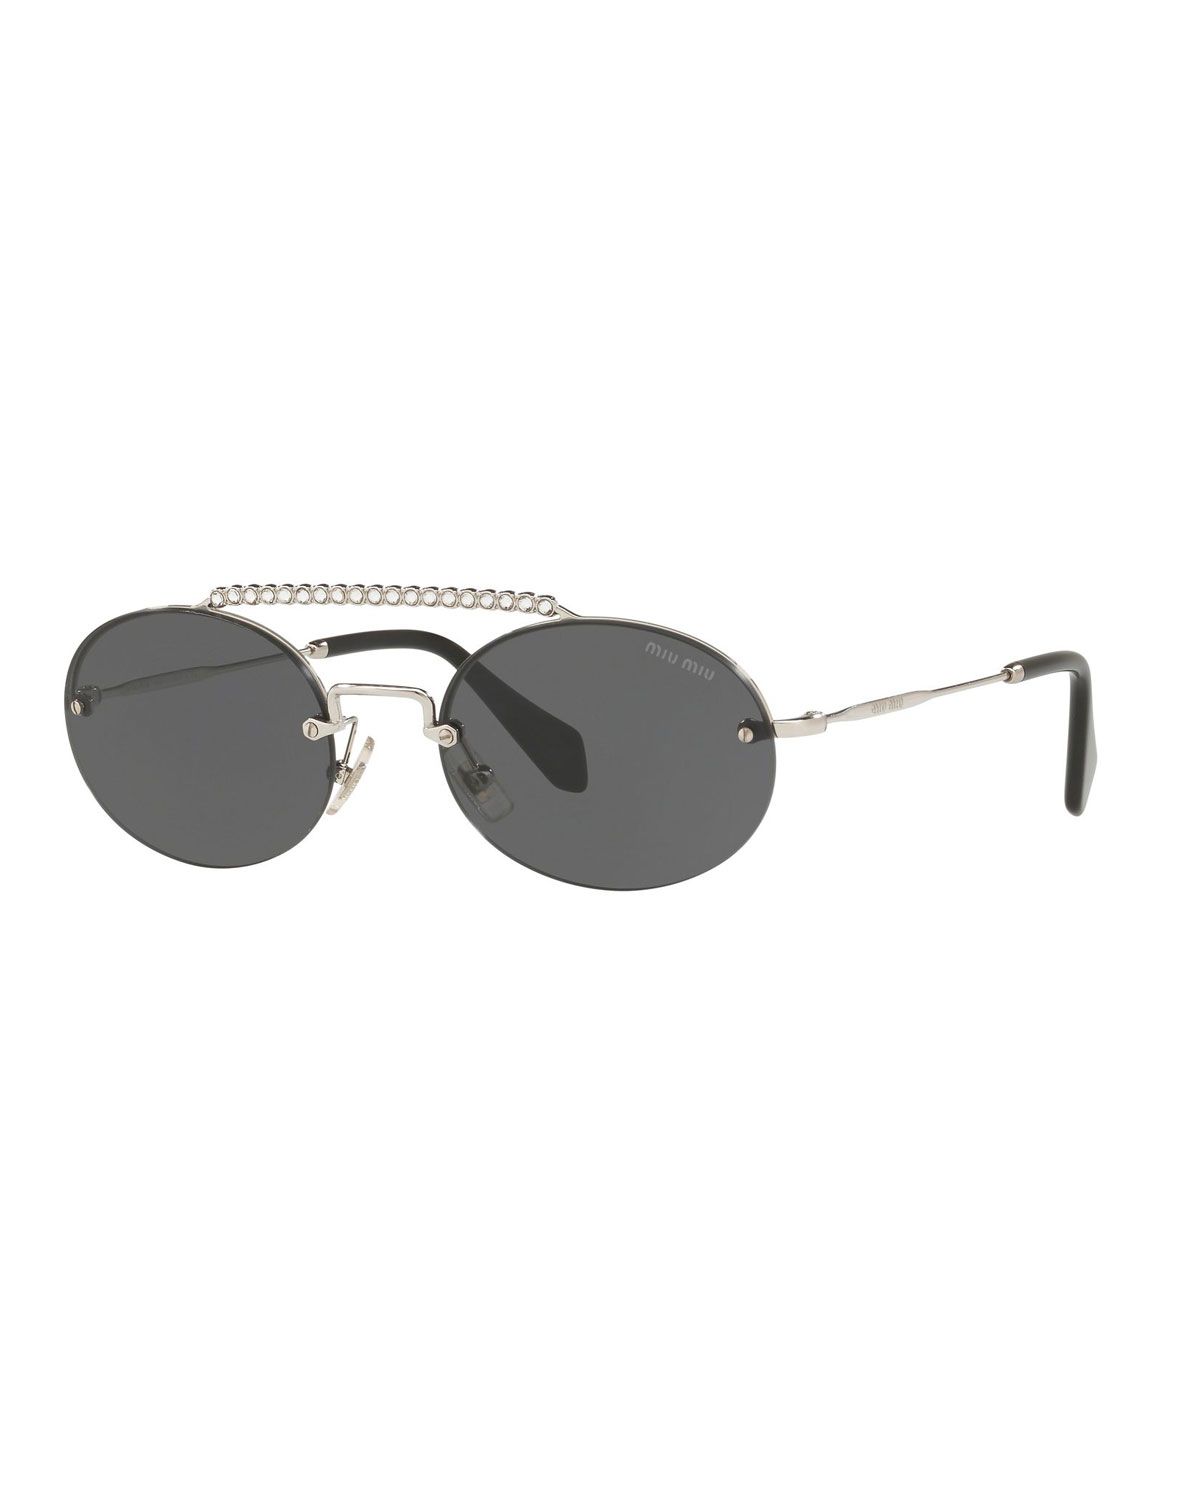 a906a107d0a8 Miu Miu Semi-Rimless Oval Sunglasses w/ Crystal Embellishment ...